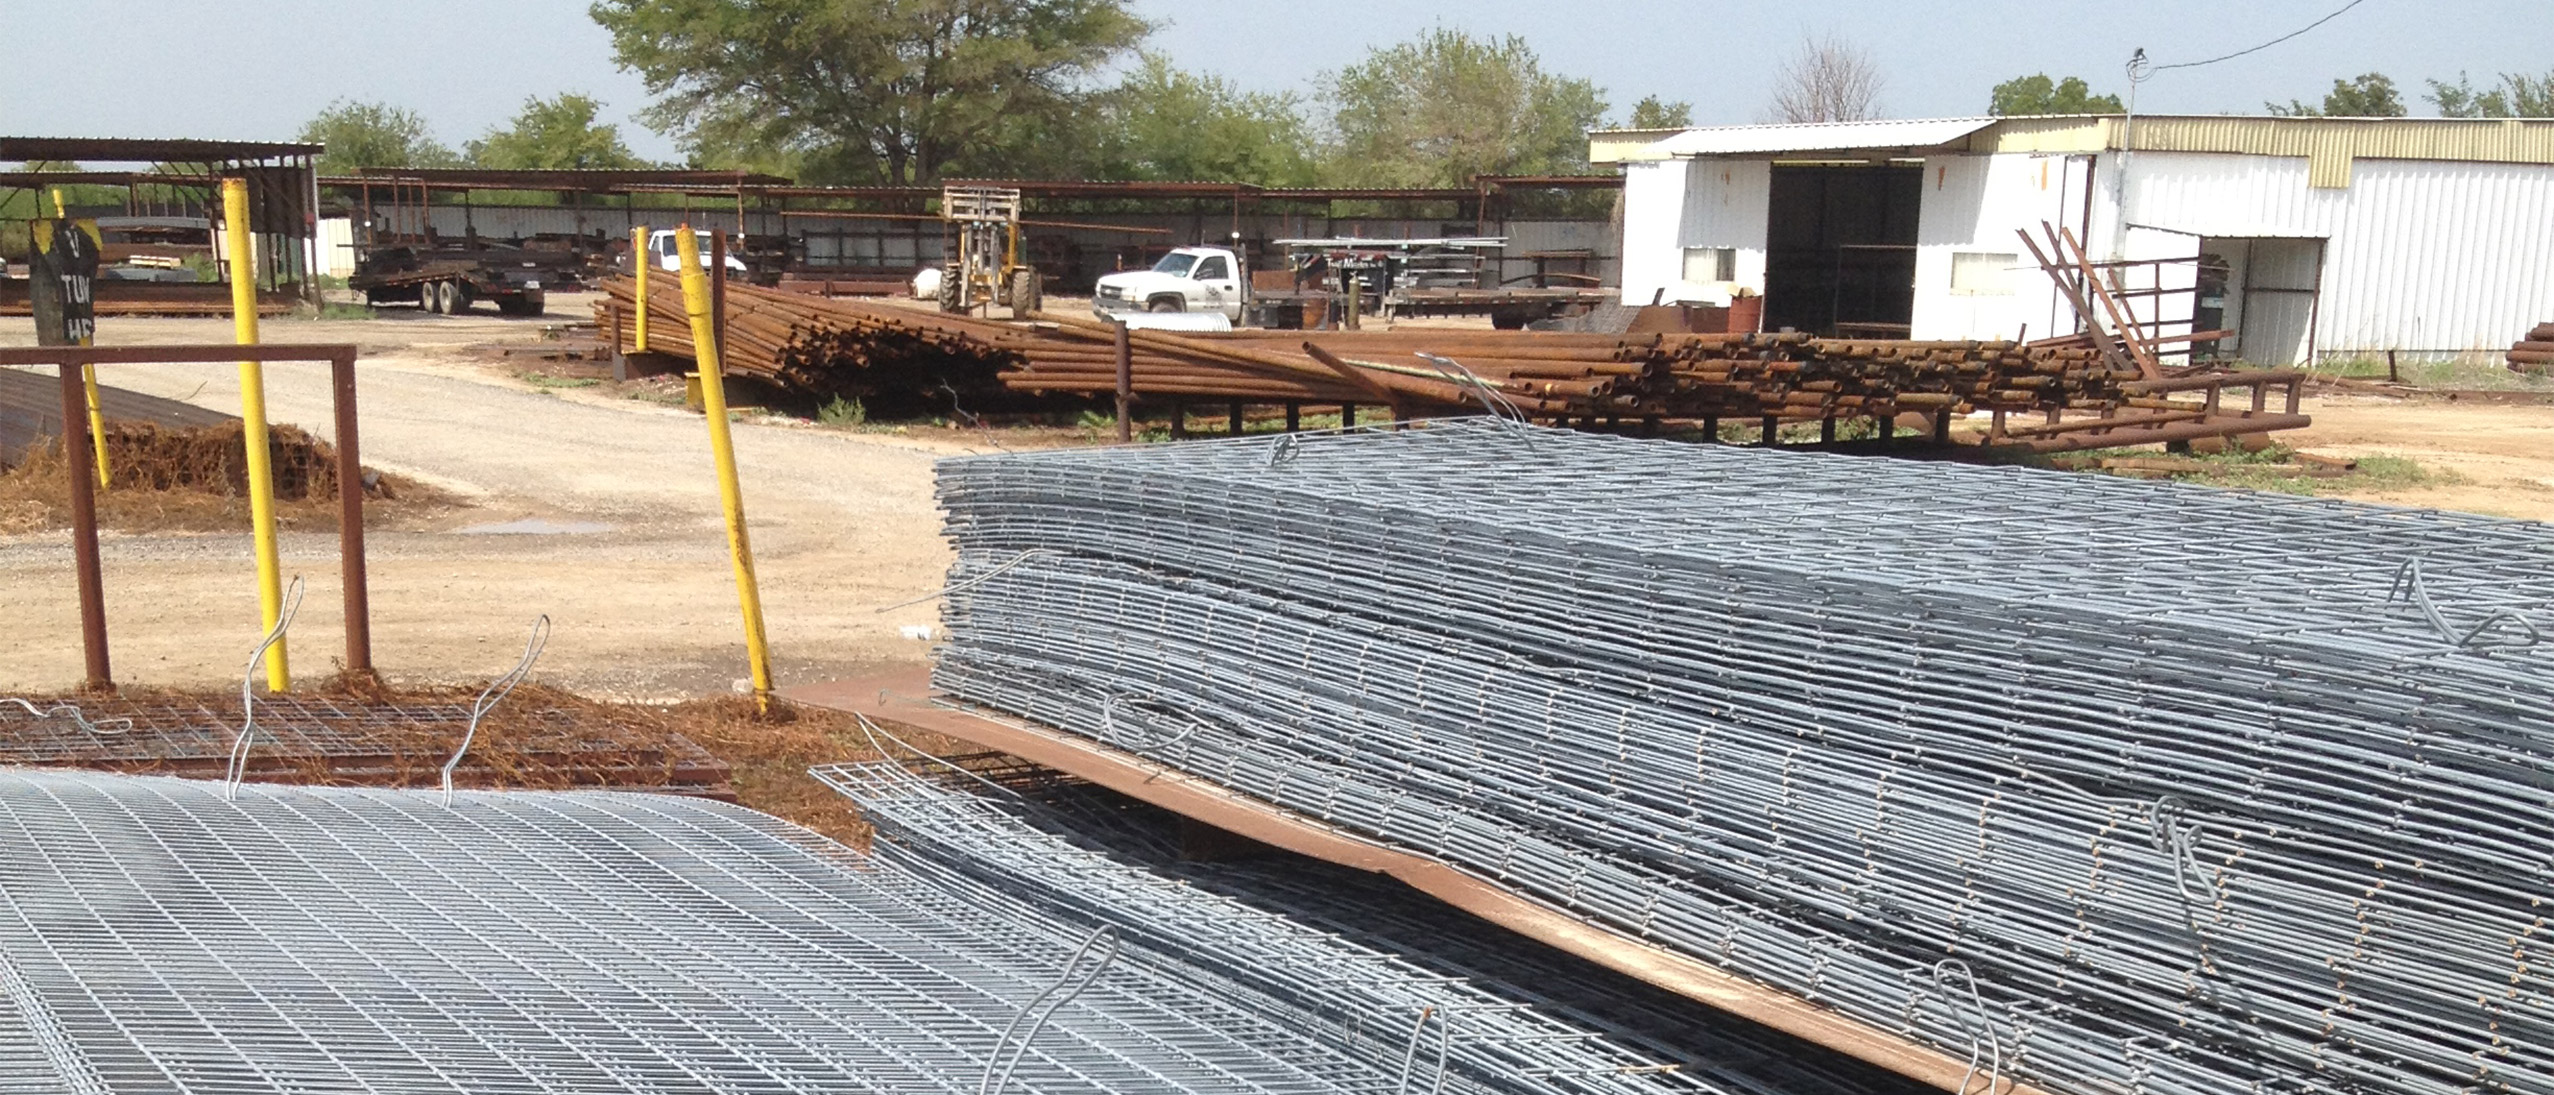 Some steel cattle panel, metals sold by Lowery Wholesale in Wise County, Reagan County and La Salle County, Texas.